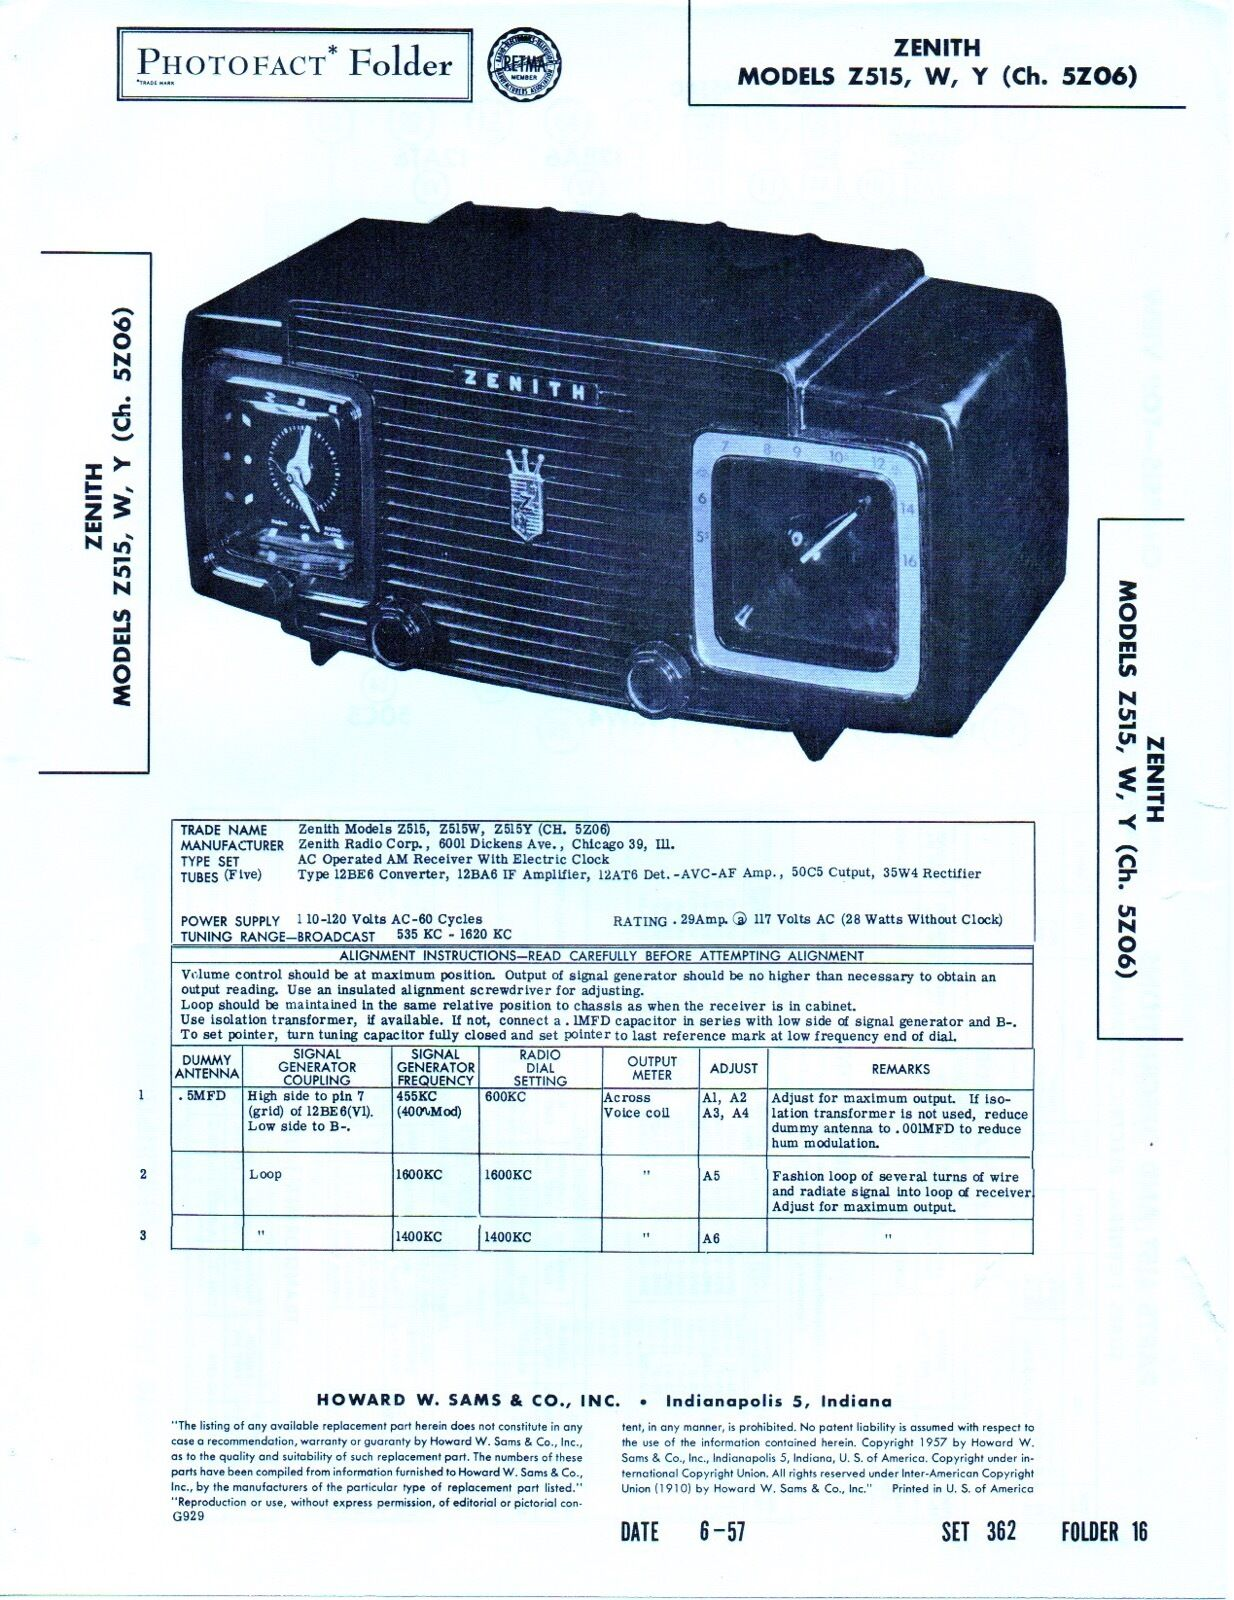 1957 Zenith Z515 Radio Service Manual Photofact Schematic Z515y Schematics 1 Of 1only Available